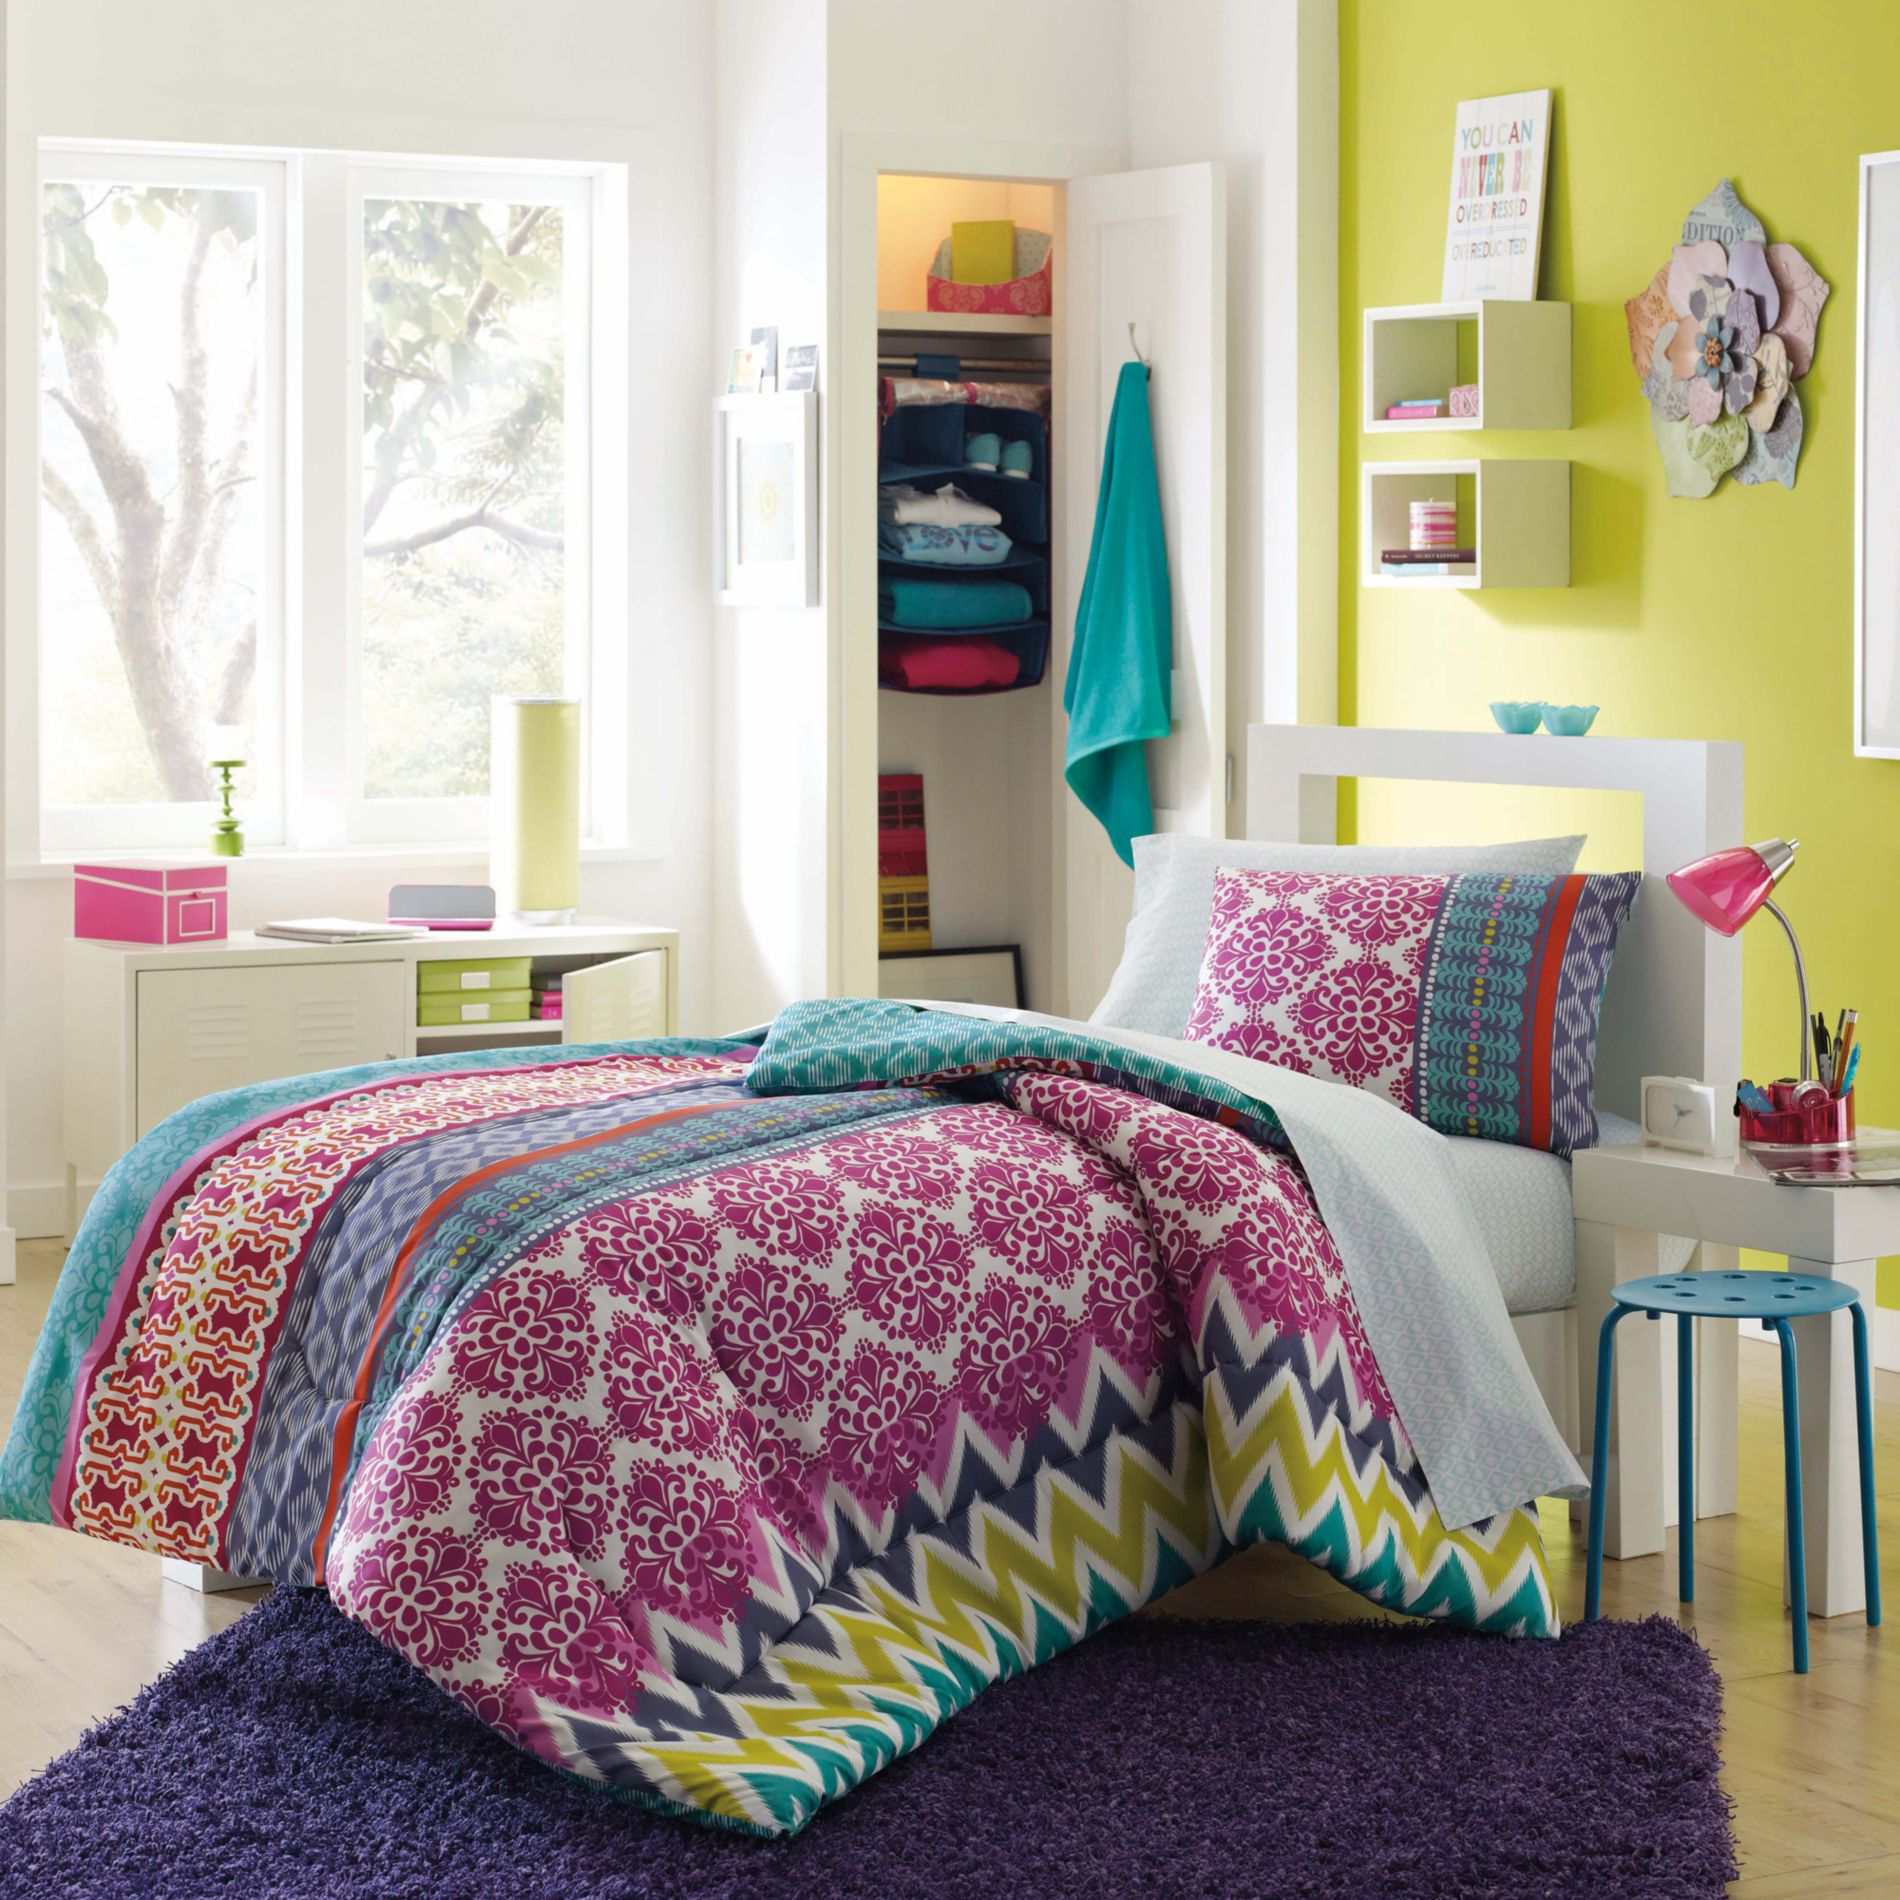 Get Started Riley 10piece Dorm Room From Bed Bath & Beyond. Find A Hotel Room. Cheap Turquoise Decorative Pillows. Oak Dining Room Chairs. Decorate A Mantel. Dining Room Modern. Breast Cancer Awareness Decorations. Decorative Trim Molding. Small Hair Salon Decorating Ideas